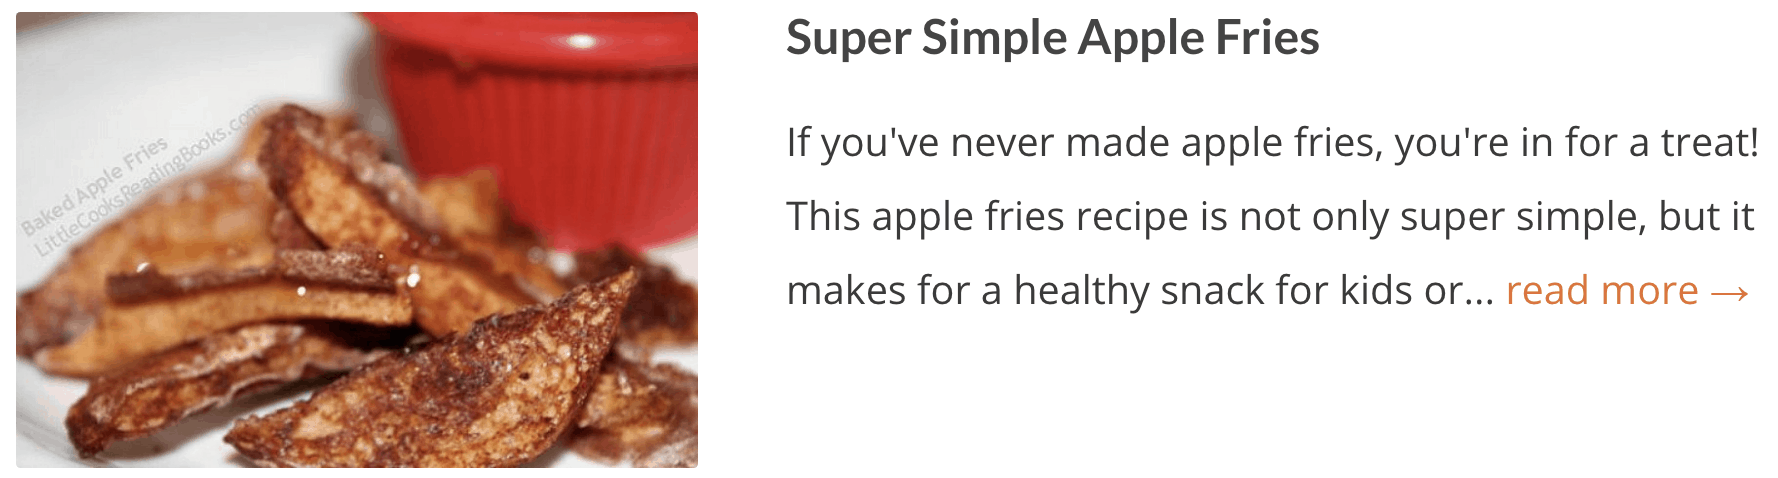 Super Simple Apple Fries Recipe